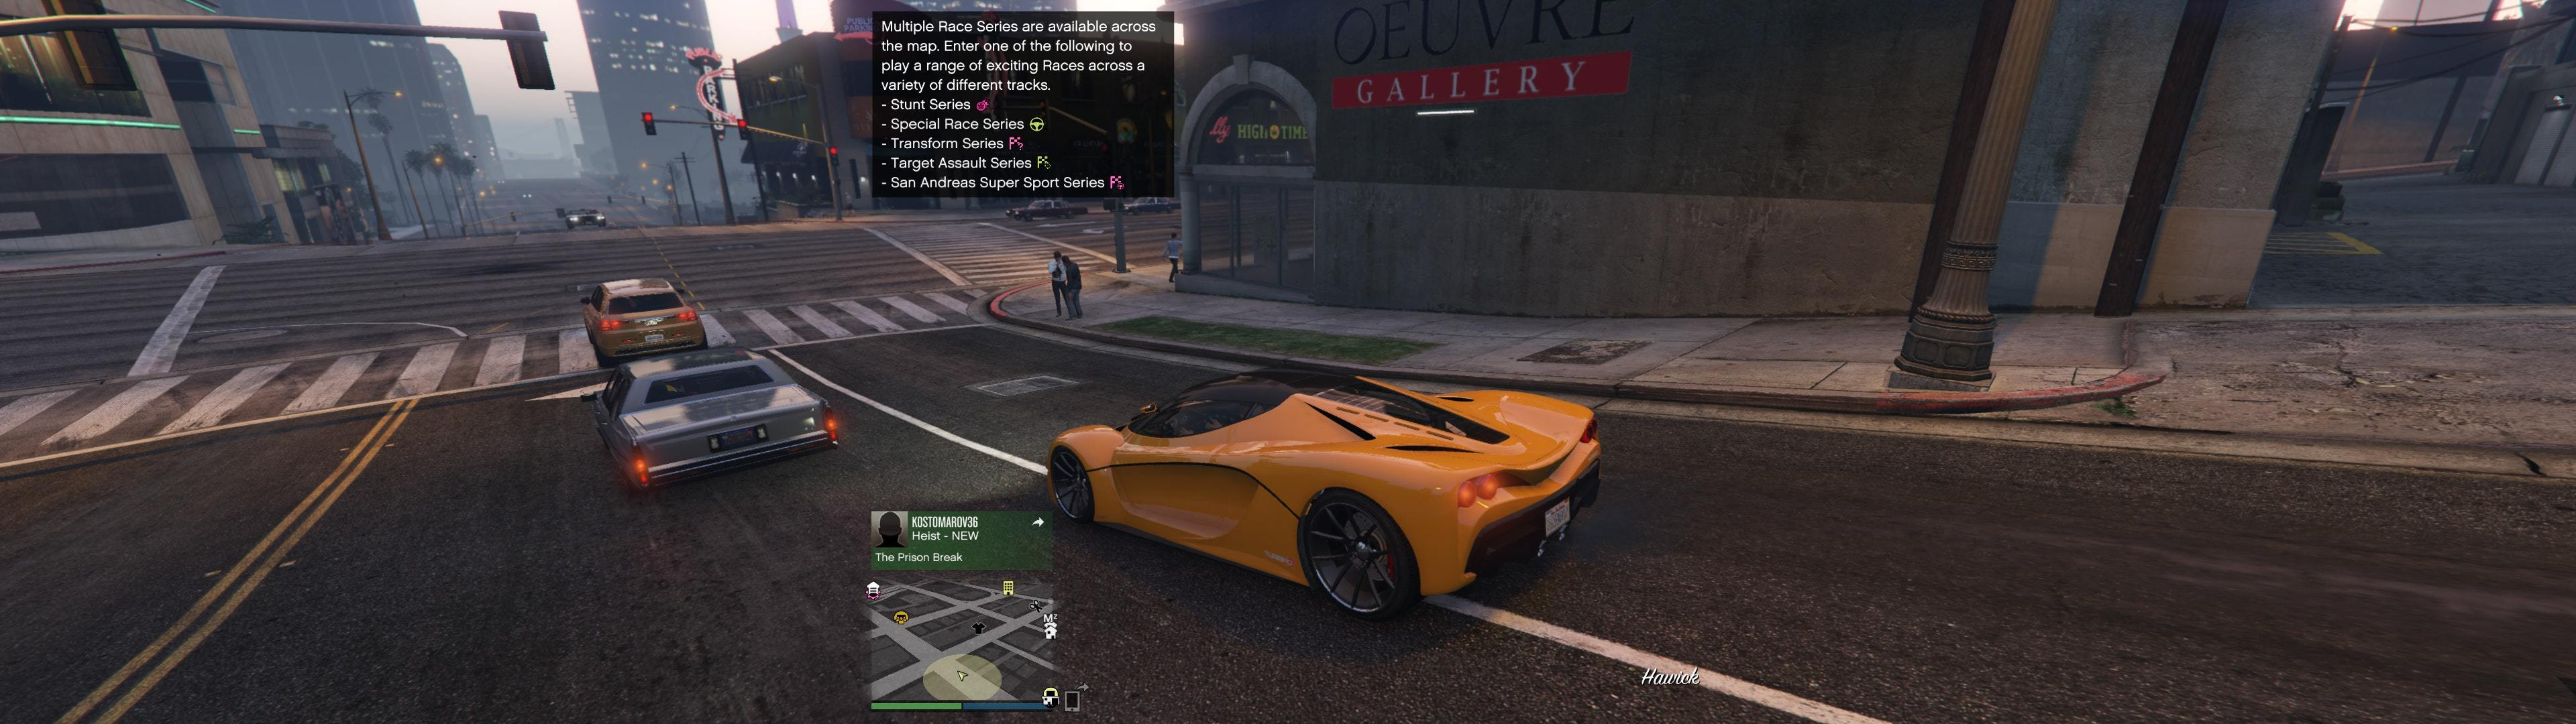 Koenigsegg Agera Convertible Lovely 3 Best Gta Games All Time Favorite Gta Games